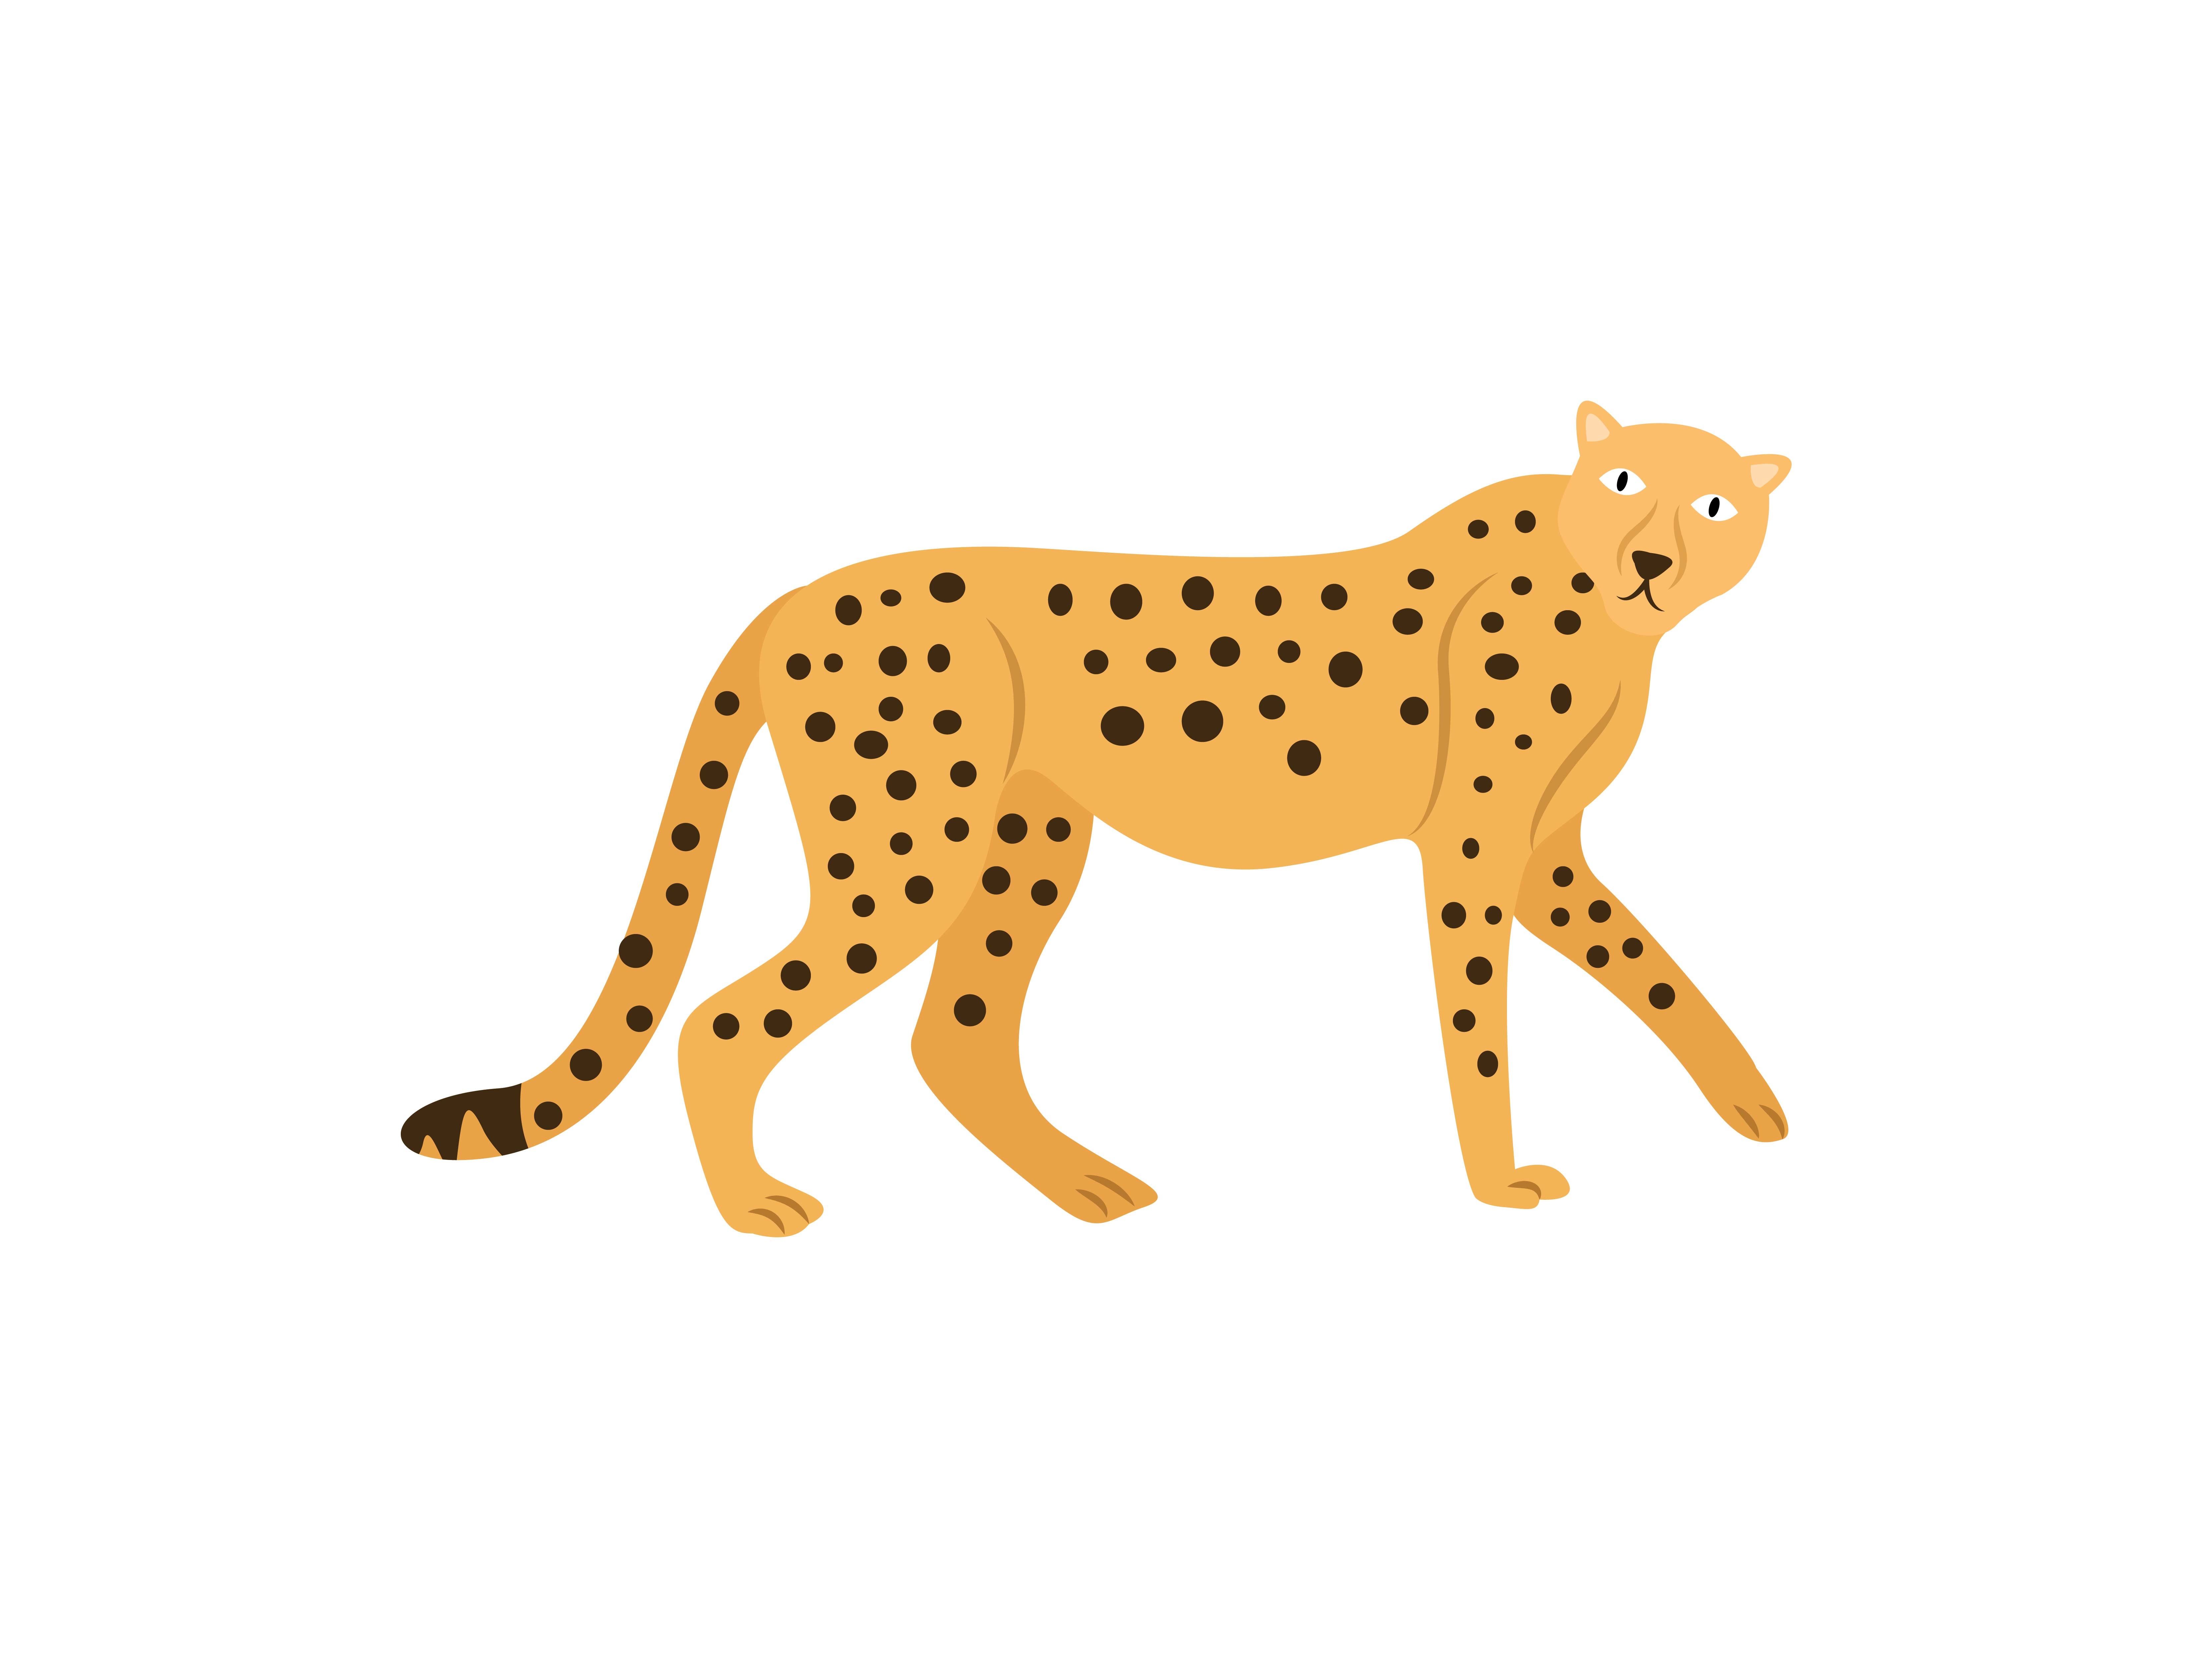 Download Free Walking Cheetah Animal Graphic By Archshape Creative Fabrica for Cricut Explore, Silhouette and other cutting machines.